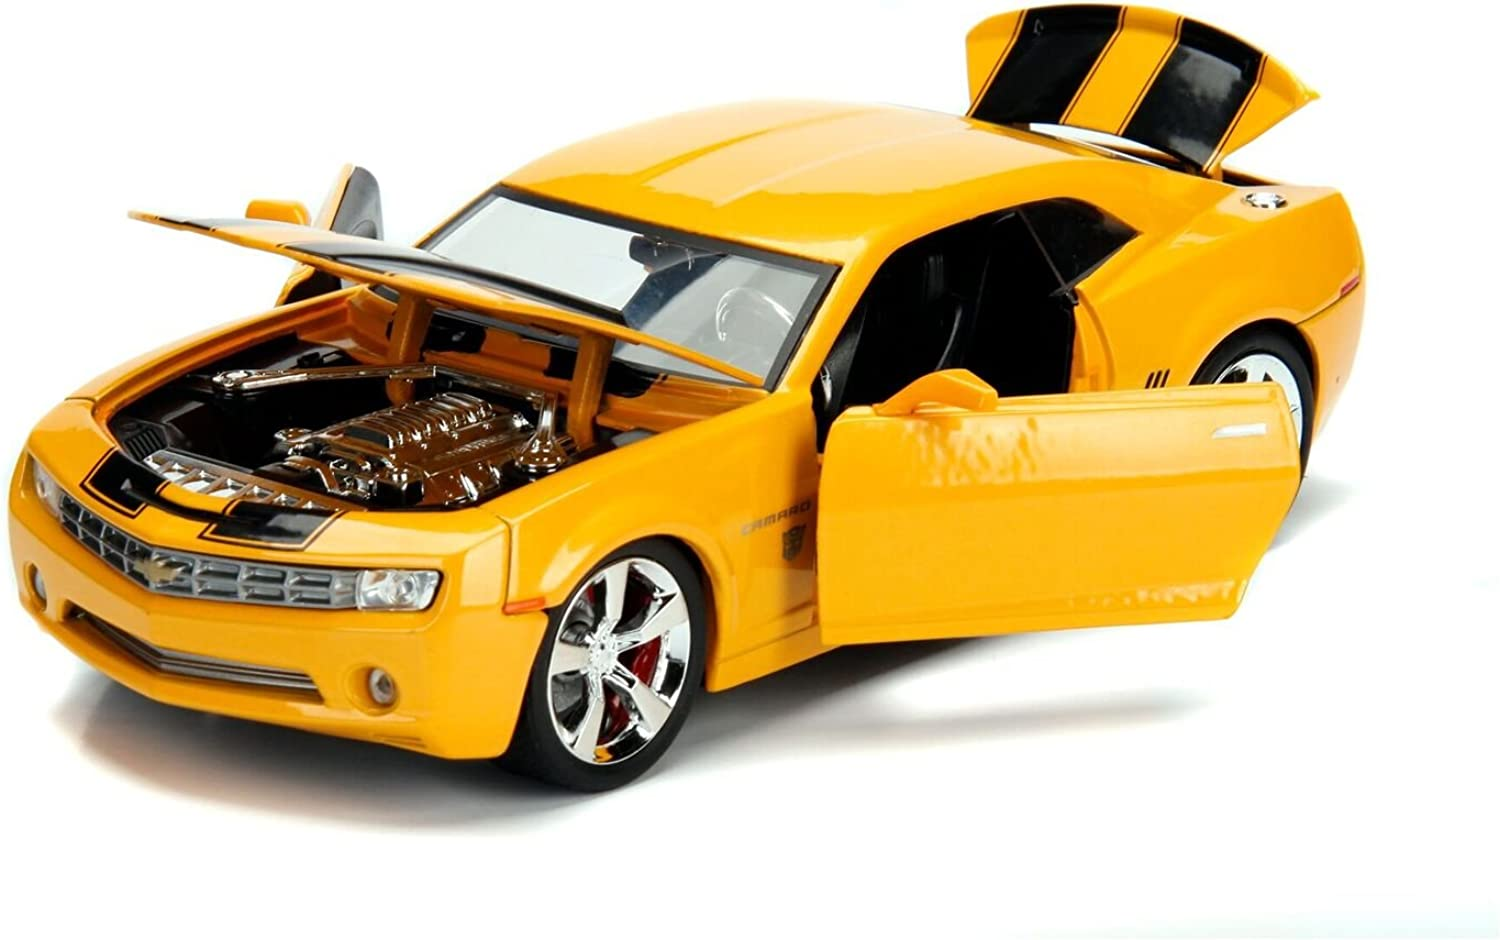 Transformers Bumblebee 2006 Chevy Camaro Concept Diecast Car, 1 24 Scale Vehicle, Yellow